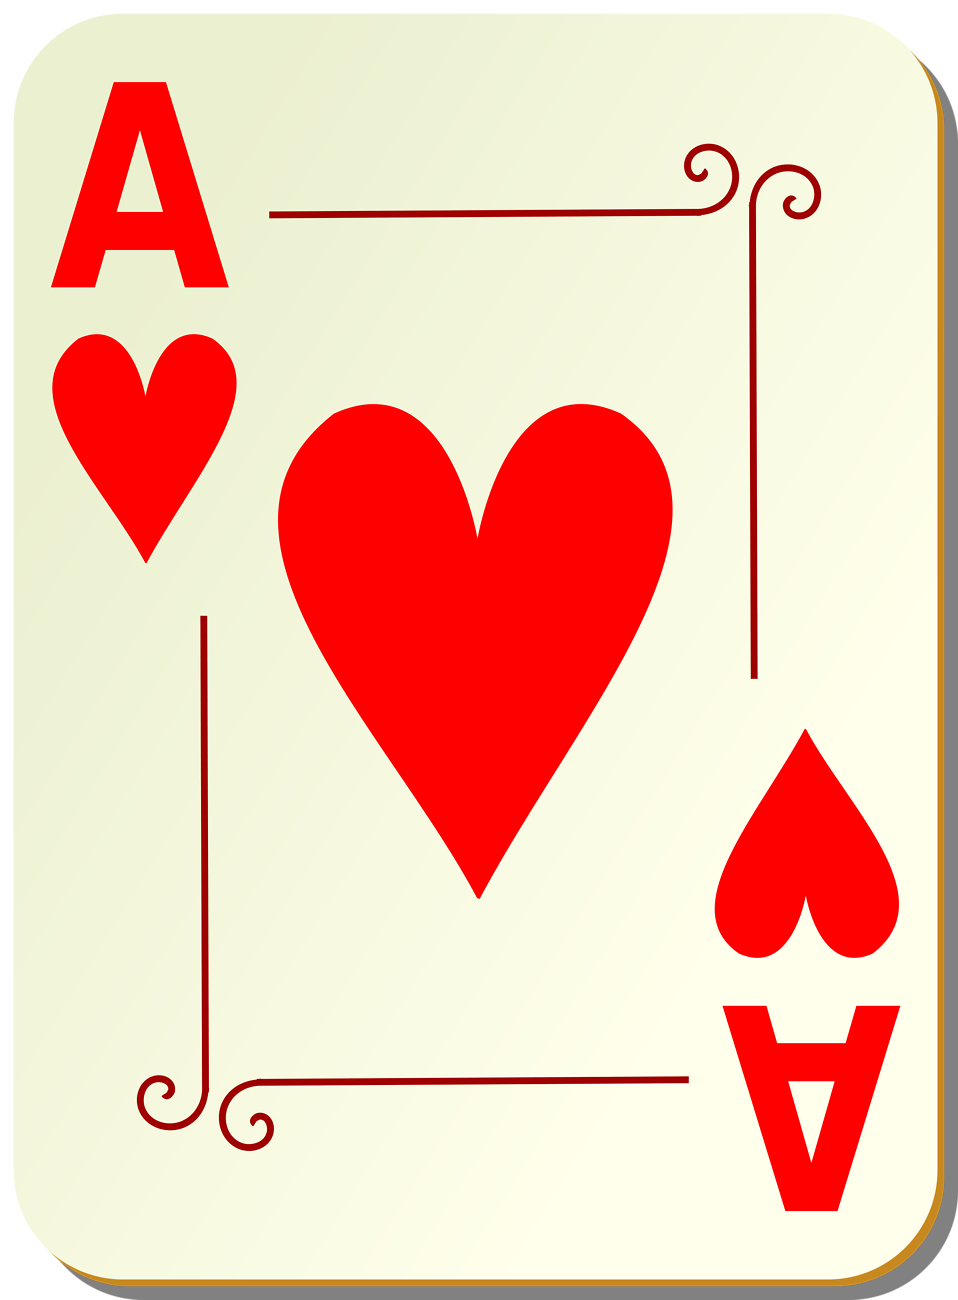 Ace playing card clipart. Cards free stock photo